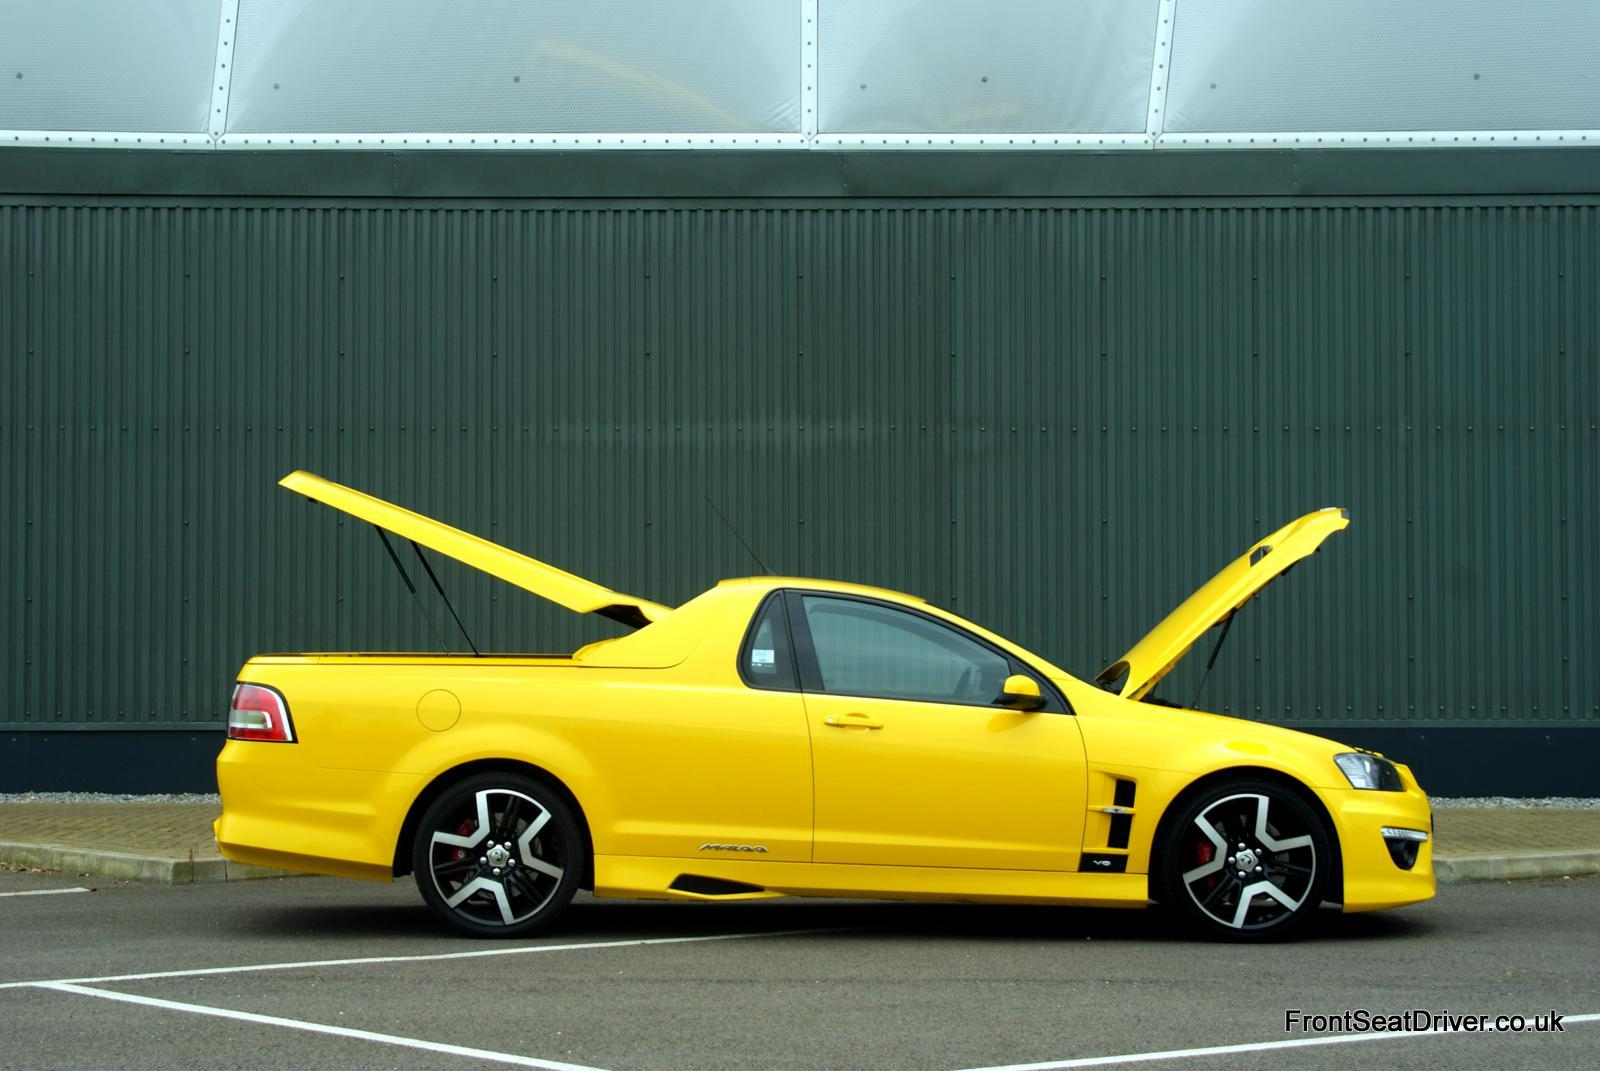 Vauxhall Maloo Vxr8 2012 Doors Open Front Seat Driver